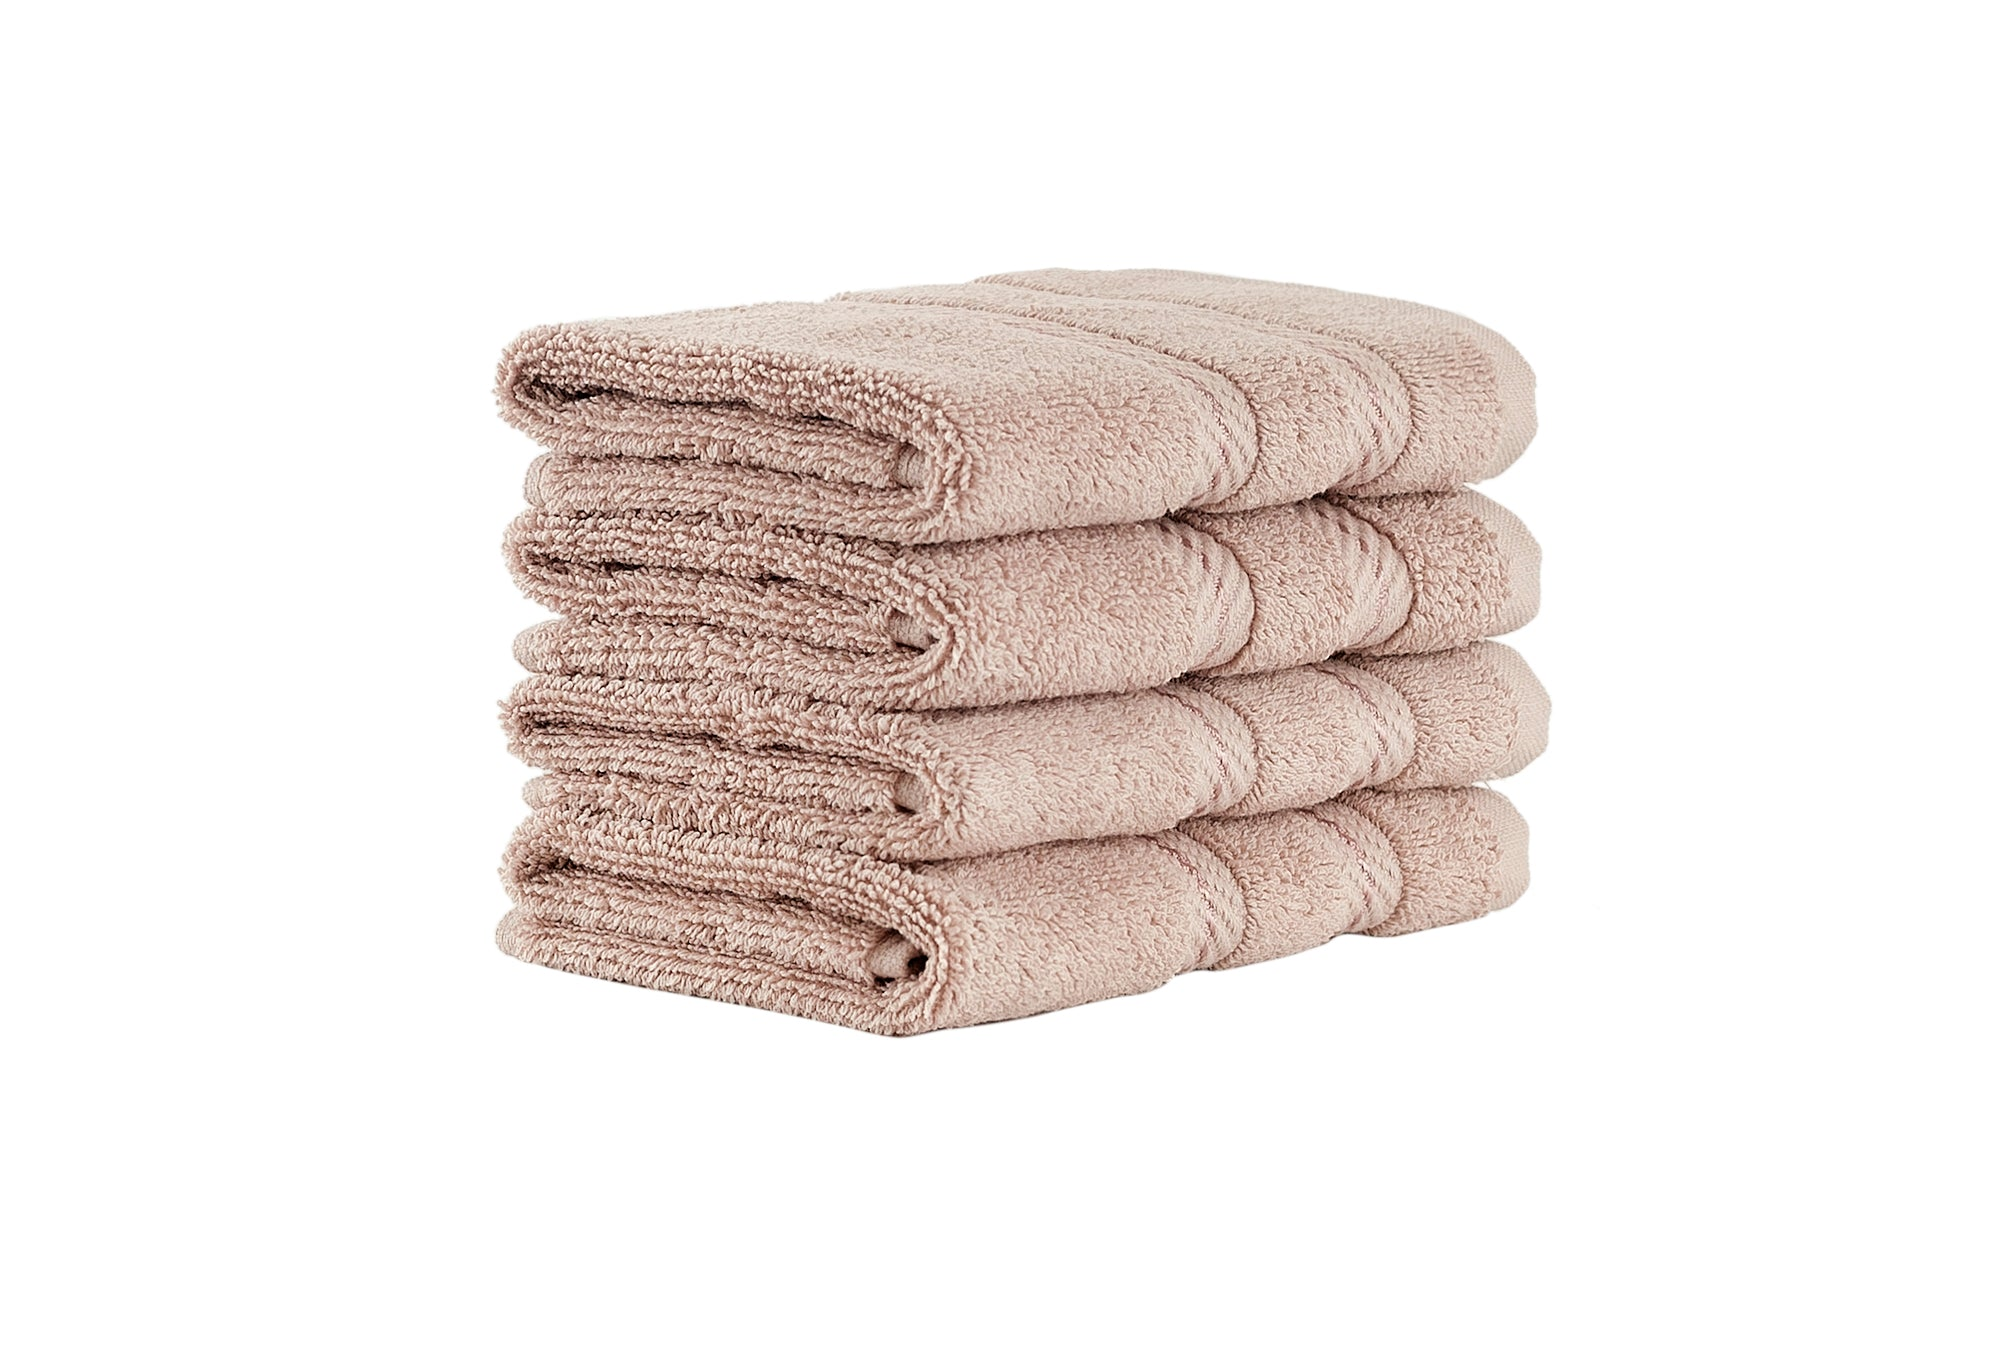 Antalya Turkish Cotton Washcloths - 240 Pieces